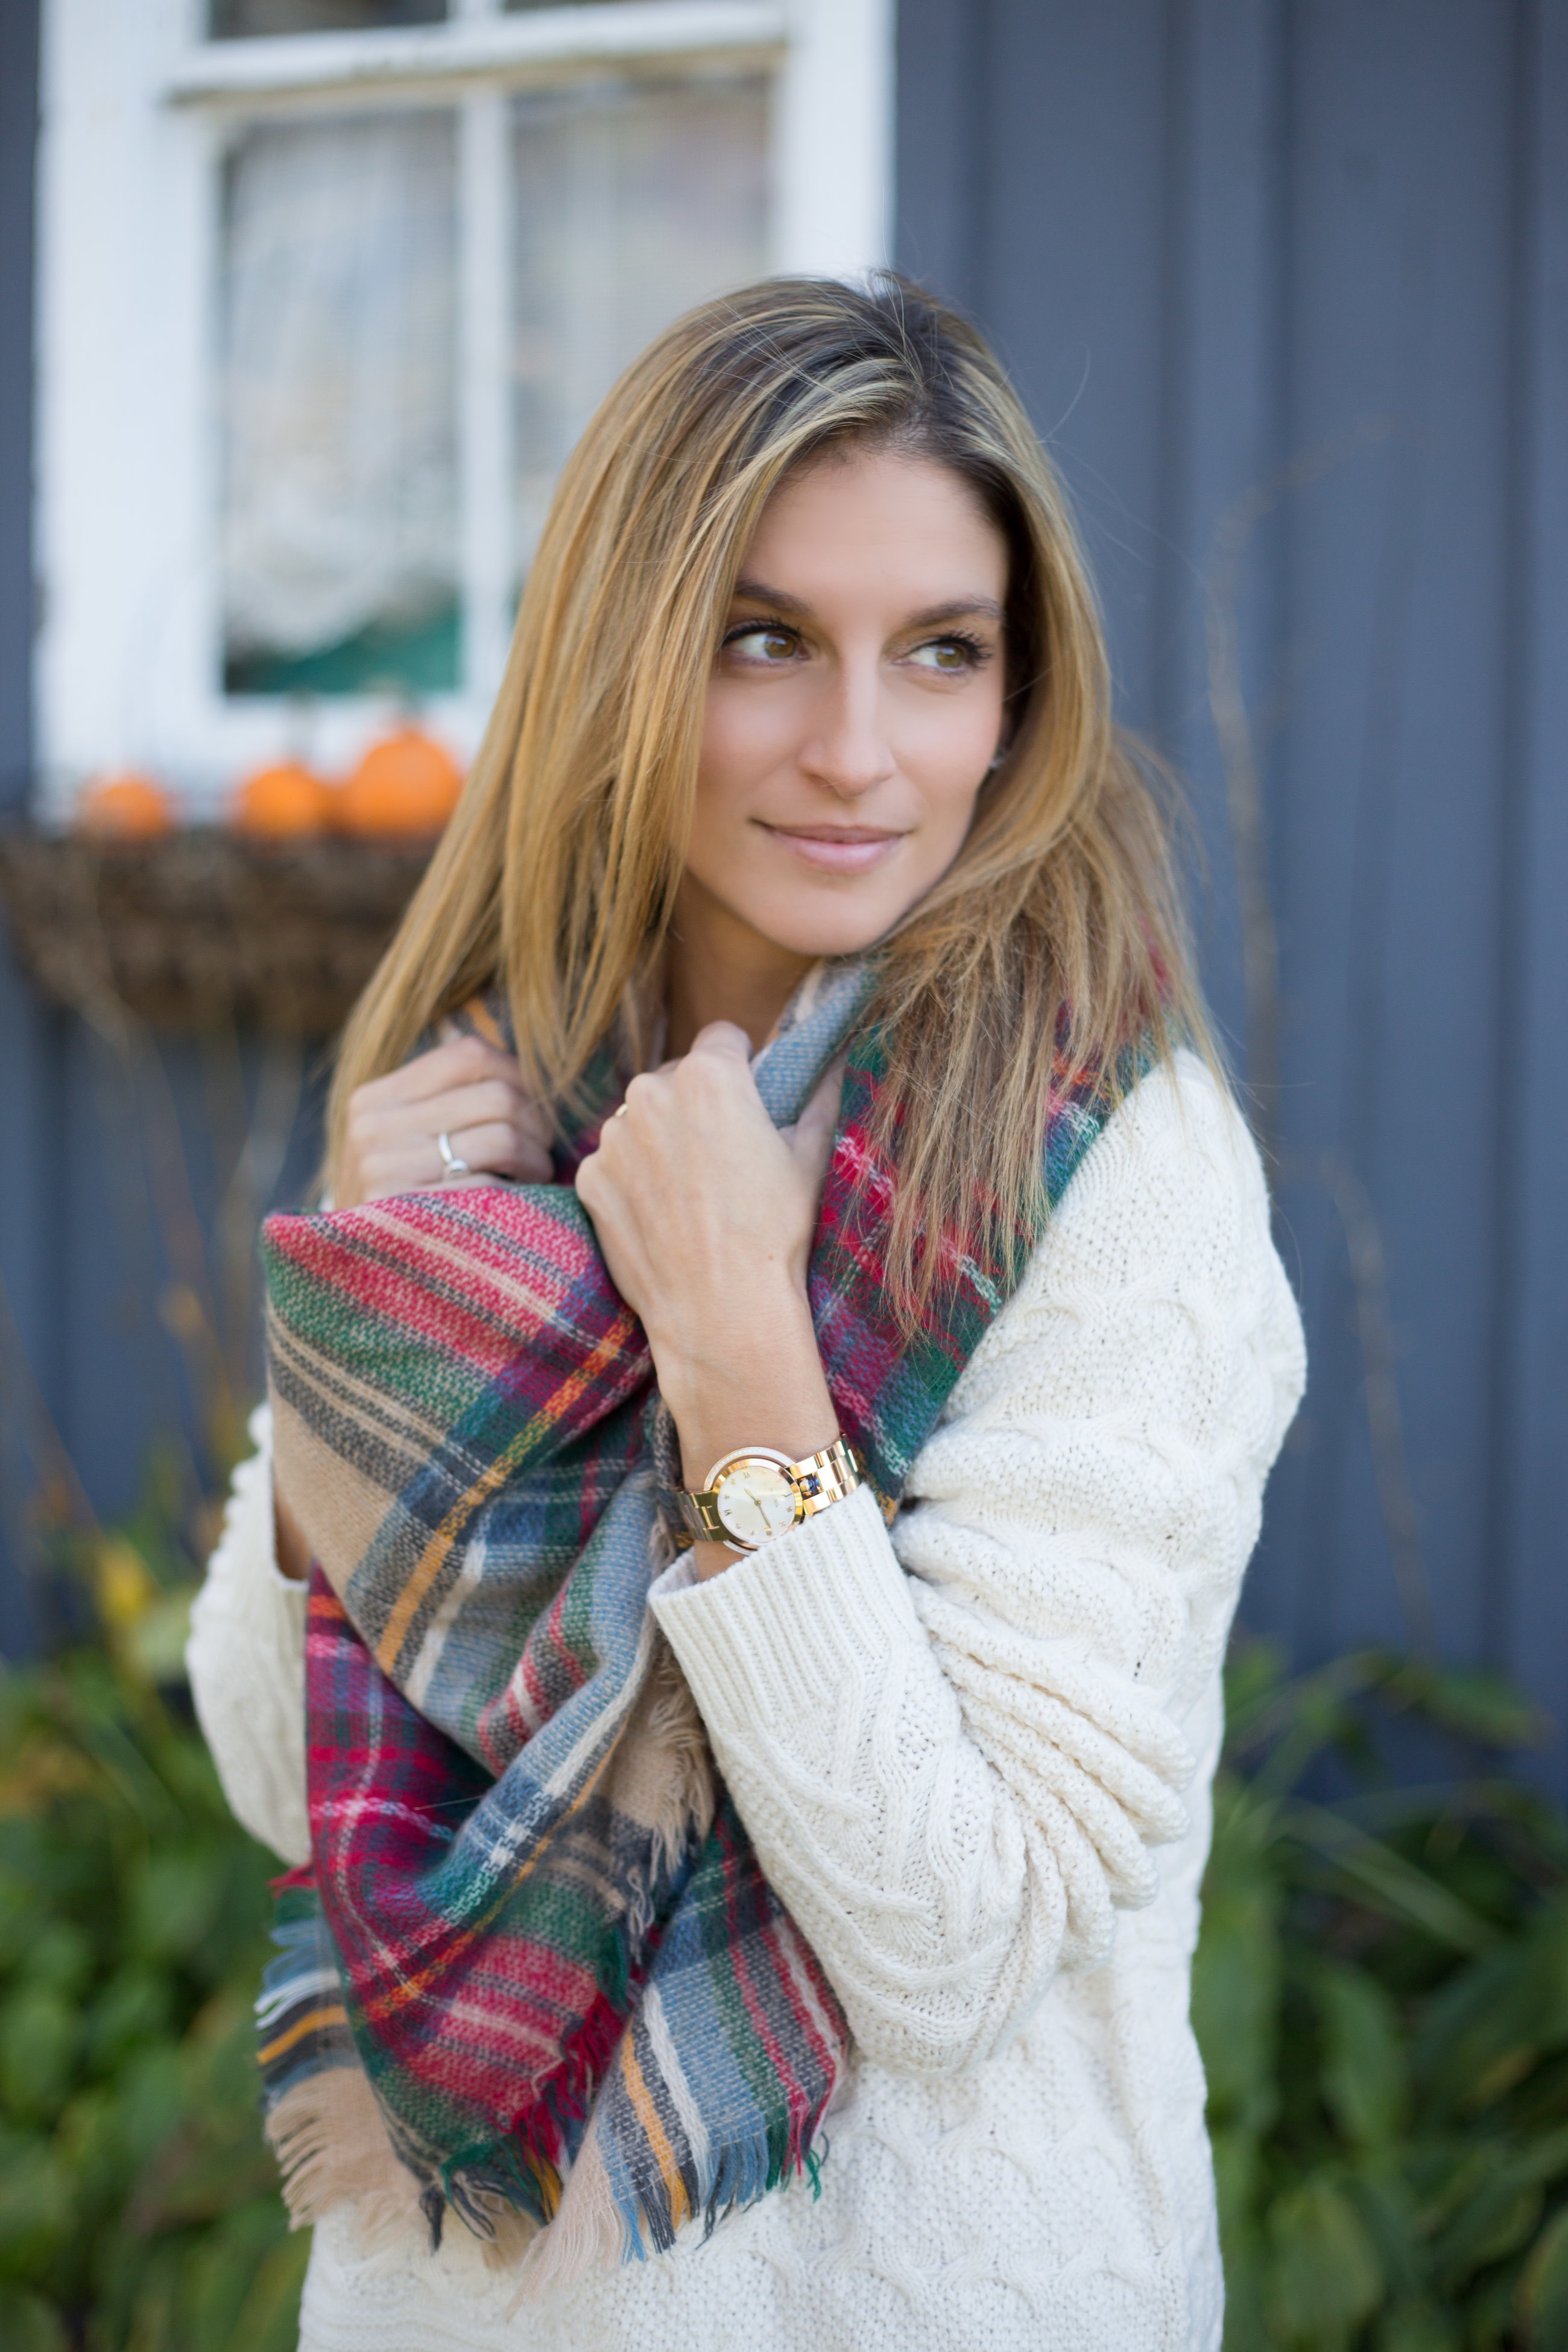 Fall style with a white cable knit sweater dress and plaid blanket scarf Mandy Furnis